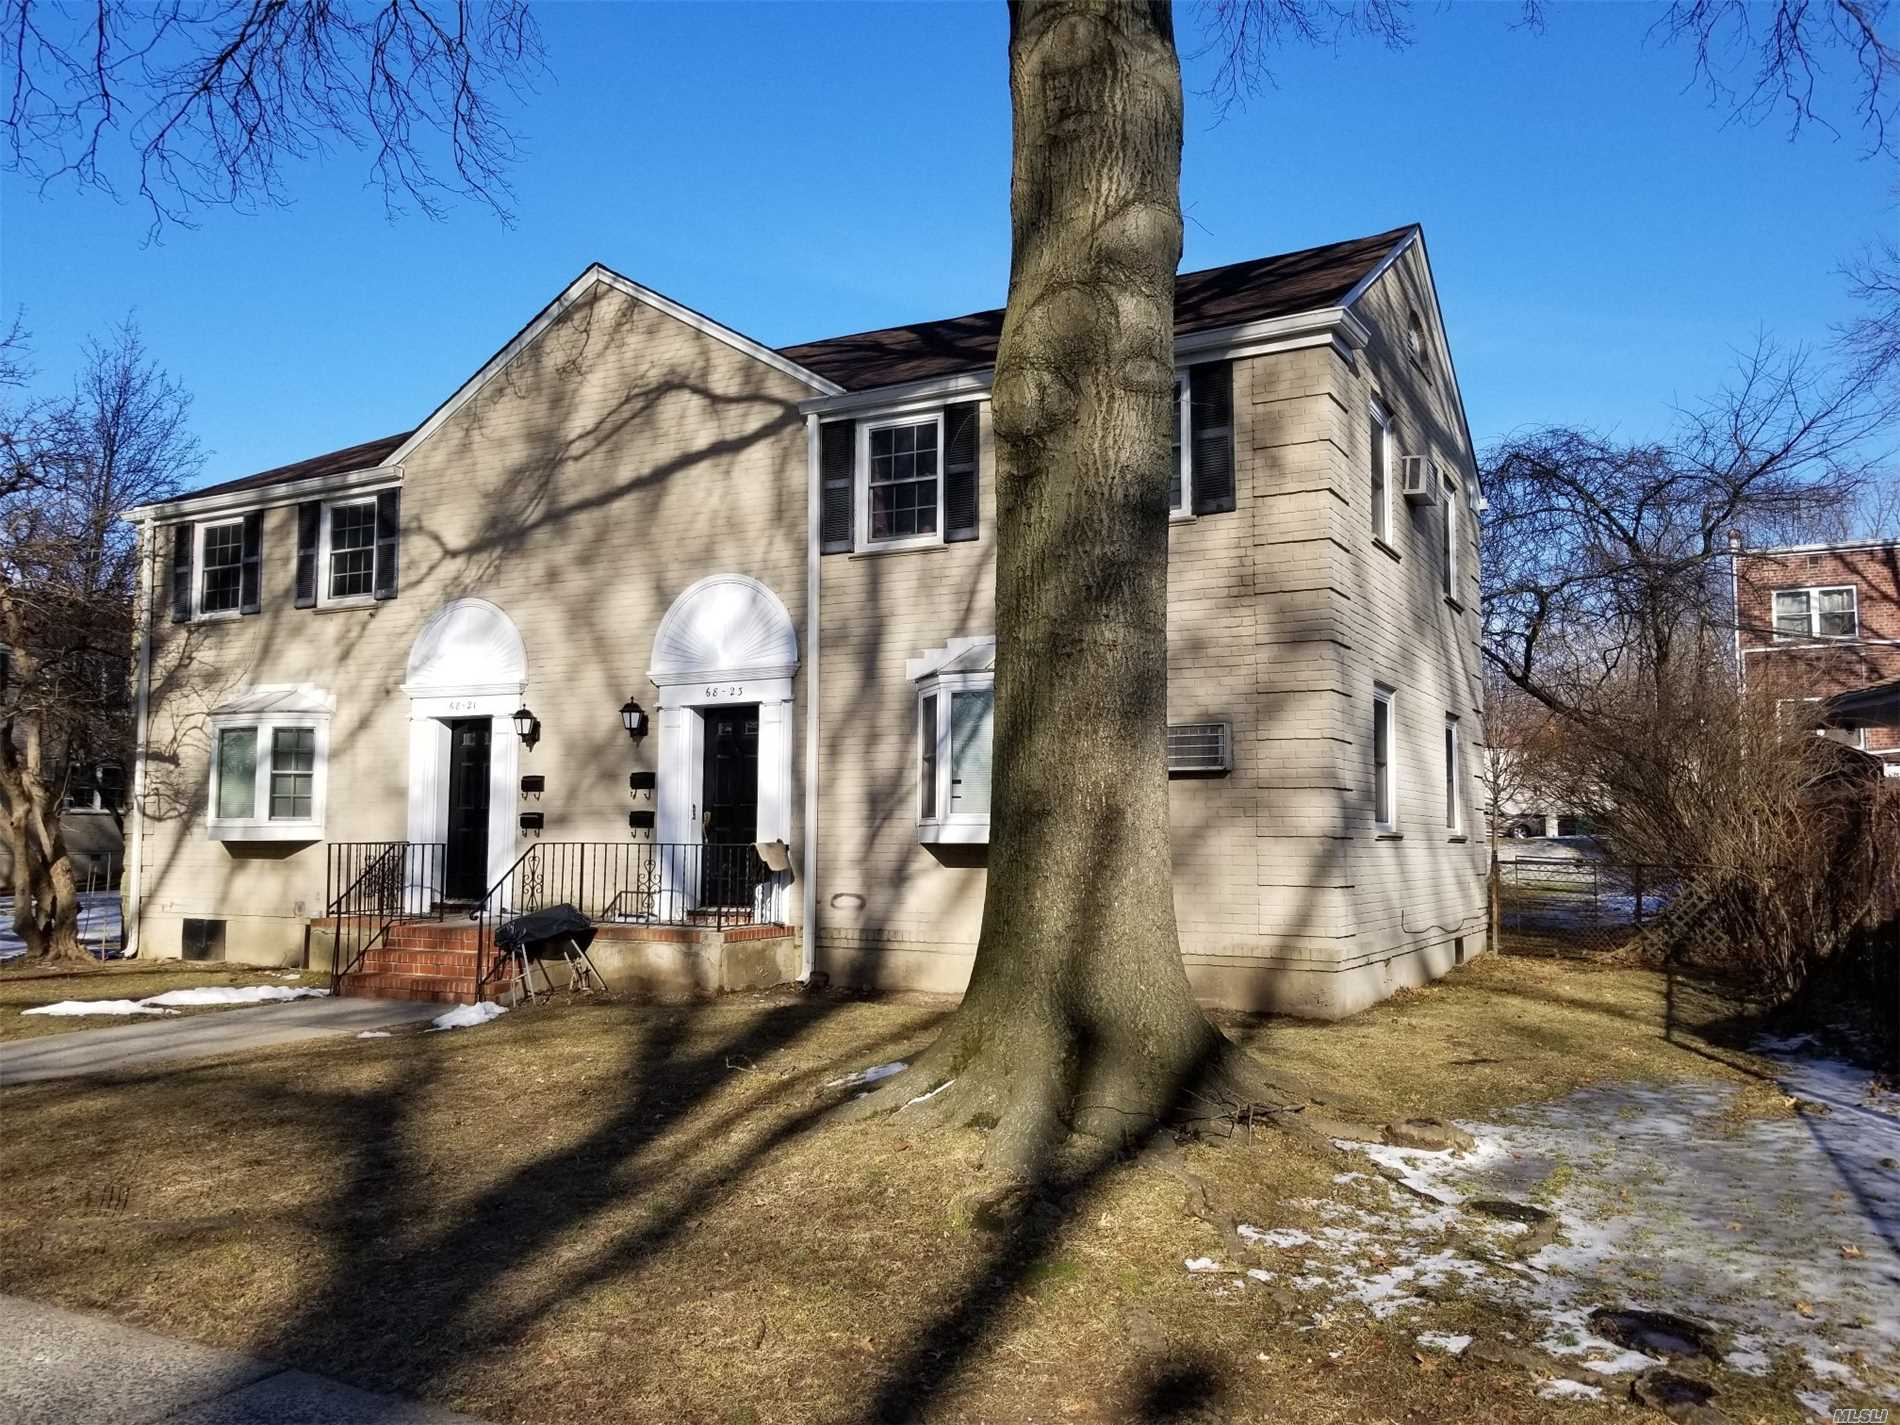 Very Attractive First Floor One Bedroom Co-Op Apartment For Sale. Features Large Living Room. Large Bedroom. Full Mod. Bathroom. Small Eat-In-Kitchen. Dog Allowed. Close Proximity To Local/Express Buses, Shopping & Alley Pond Park